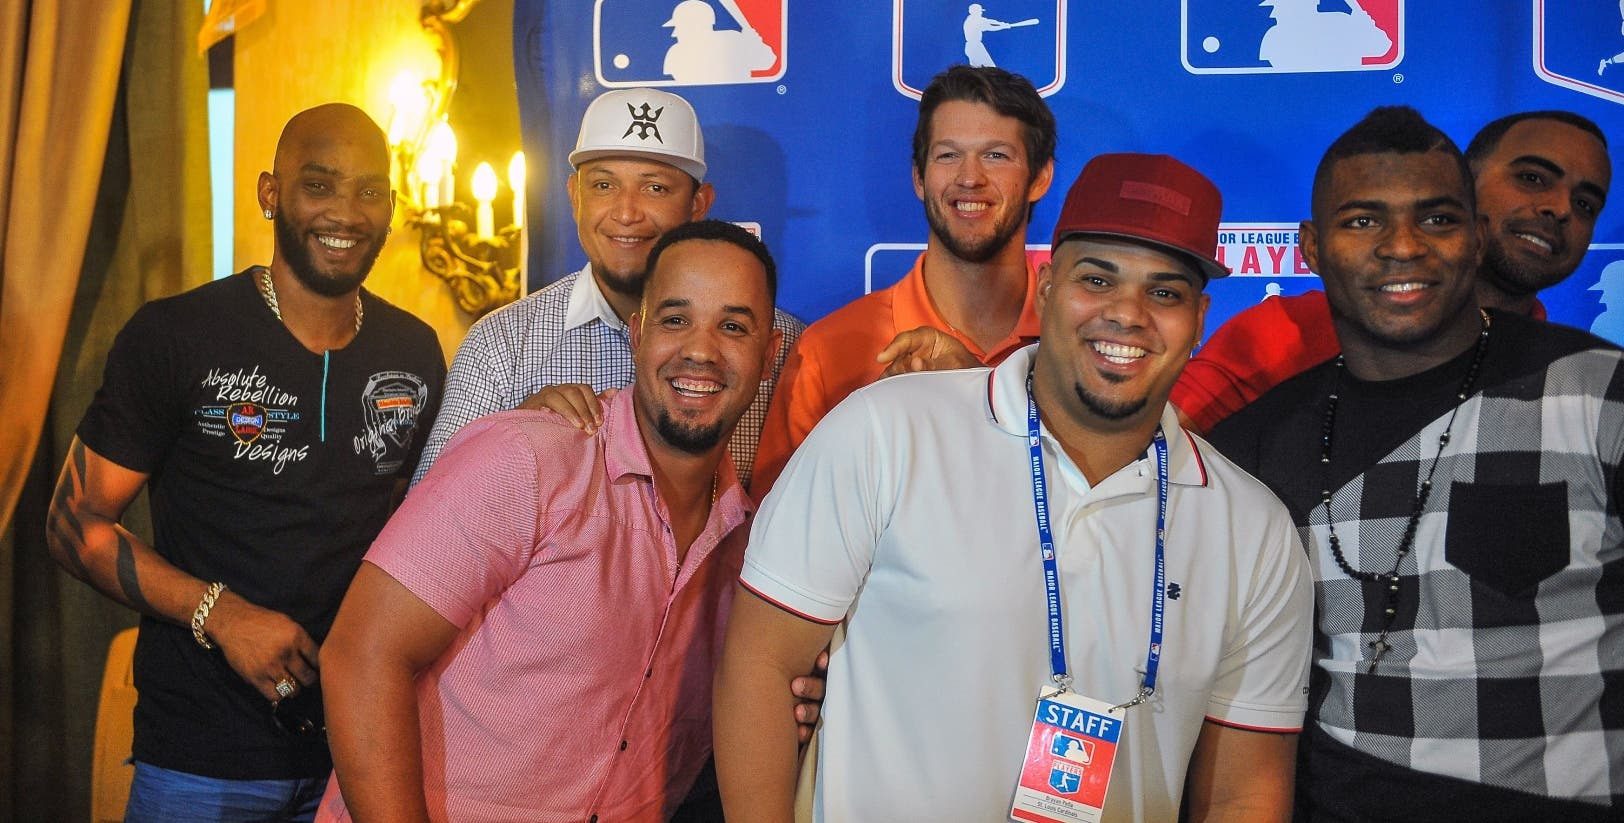 (L-R) MLB players, Cuban Alexei Ramirez, Venezuelan Miguel Cabrera, Cuban Jose Dariel Abreu, US Clayton Kershaw, Cuban Brian Pena, Cuban Yasiel Puig and Dominican Nelson Cruz pose for a picture at the National Hotel in Havana, on December 15, 2015. Cuban baseball stars Jose Abreu and Yasiel Puig are returning home Tuesday for the first time since defecting to join the American big leagues, part of an unprecedented Major League Baseball tour made possible by the thaw in US-Cuban relations. The delegation also includes Cuban-born player Alexei Ramirez, a free agent who left Cuba legally by marrying a Dominican in 2007.   AFP PHOTO/YAMIL LAGE